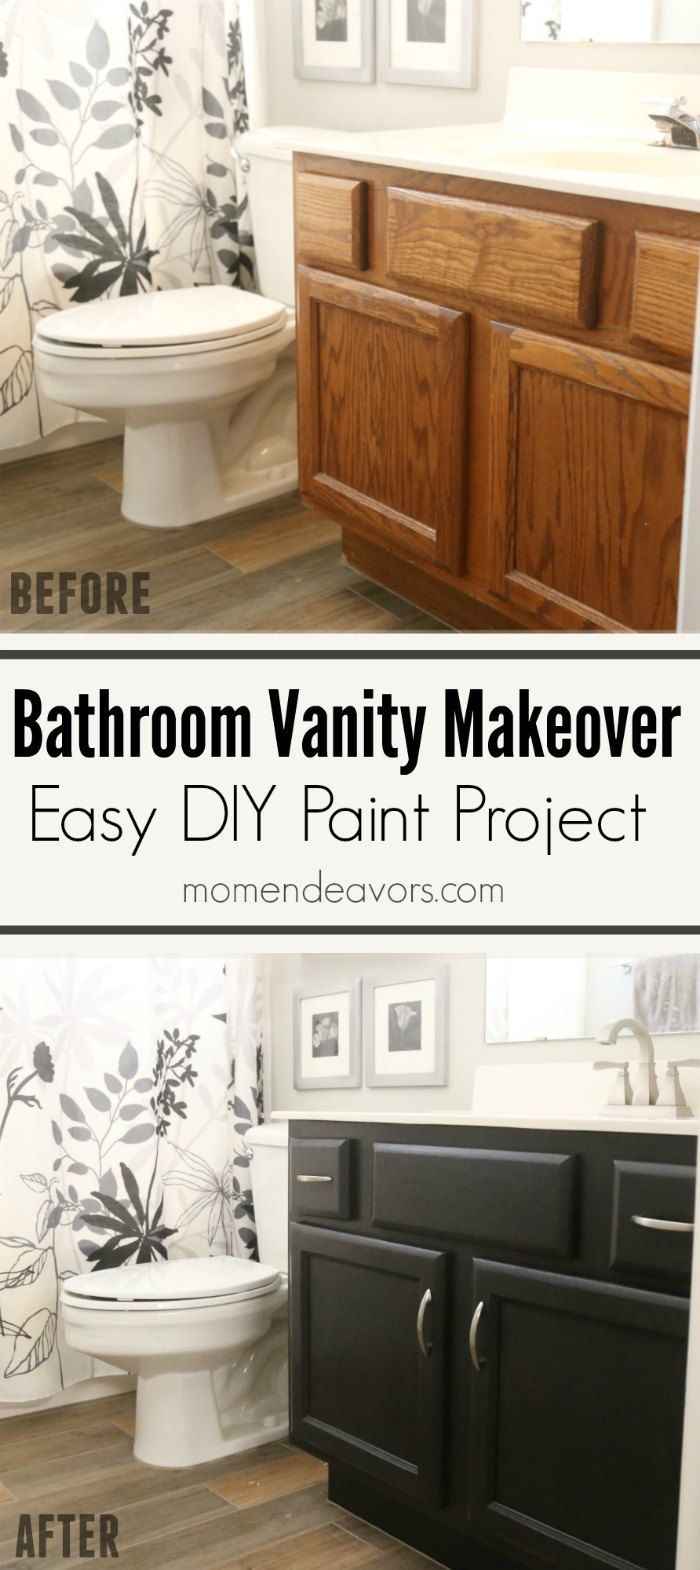 how to paint bathroom cabinets black pin by endeavors on diy home decor 17177